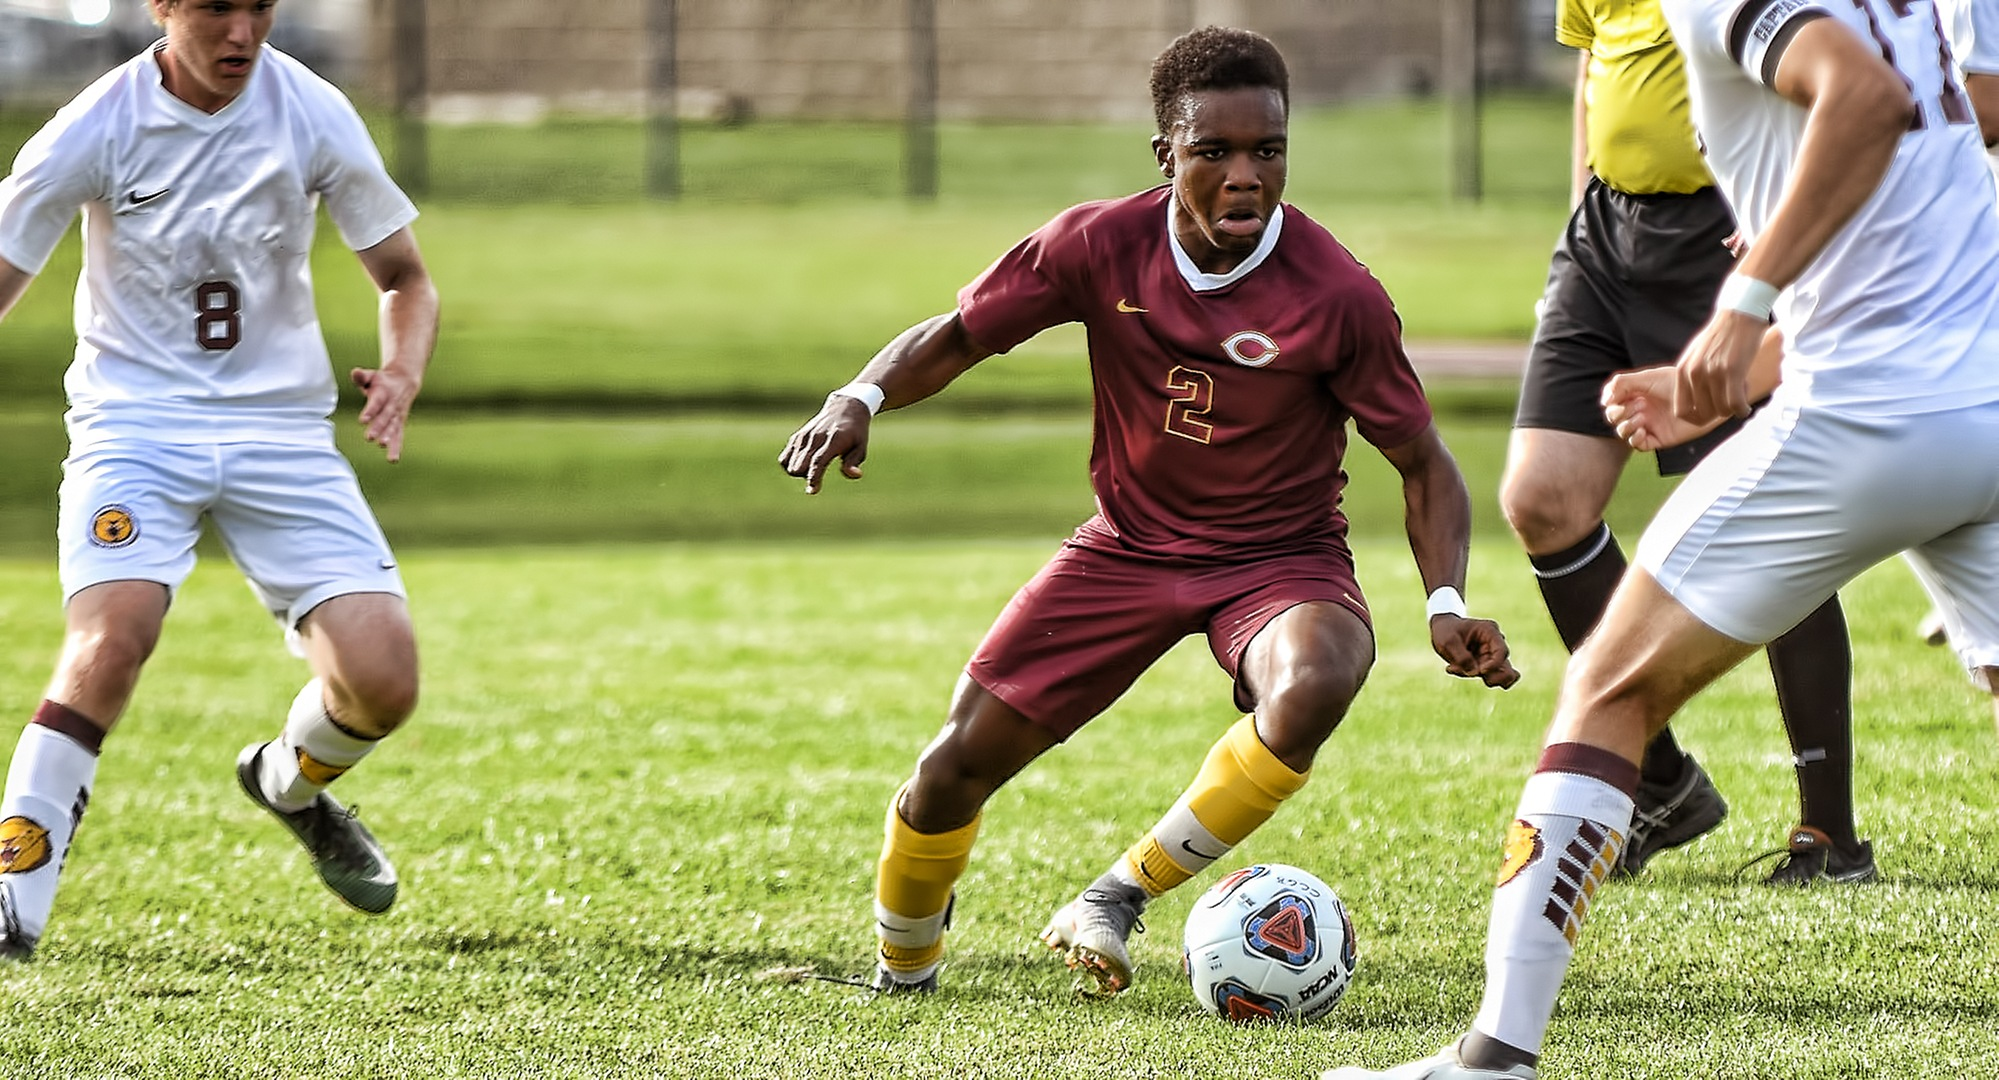 Freshman Patrick Smith scored his first collegiate goal in the Cobbers' game at Bethel.